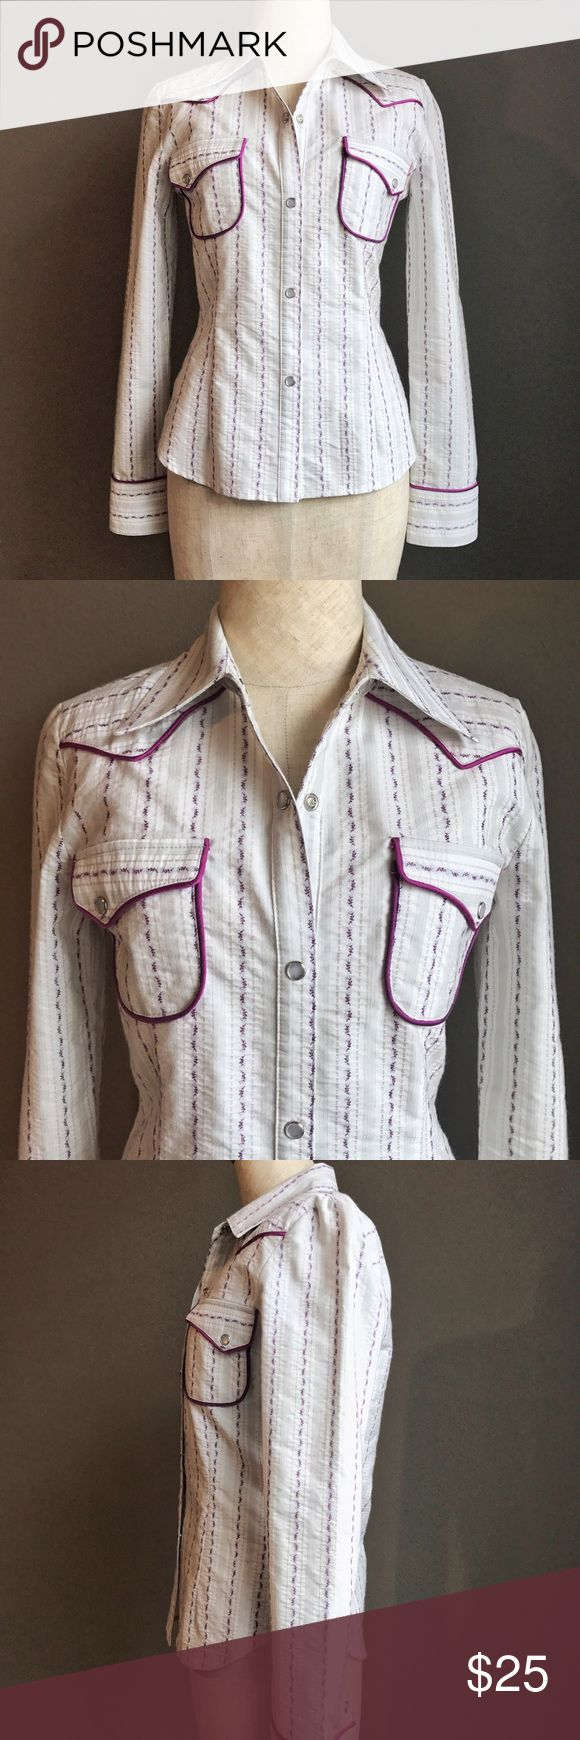 To the Max cowgirl shirt EUC with classic western detailing, pointed collar, small front pockets, and pearl button snap closures. No size tag but fits like an xs. {Shoulder width 14.5 • sleeve length 23 • bust 15.5 • waist 14 • length 22} To the Max Tops Button Down Shirts